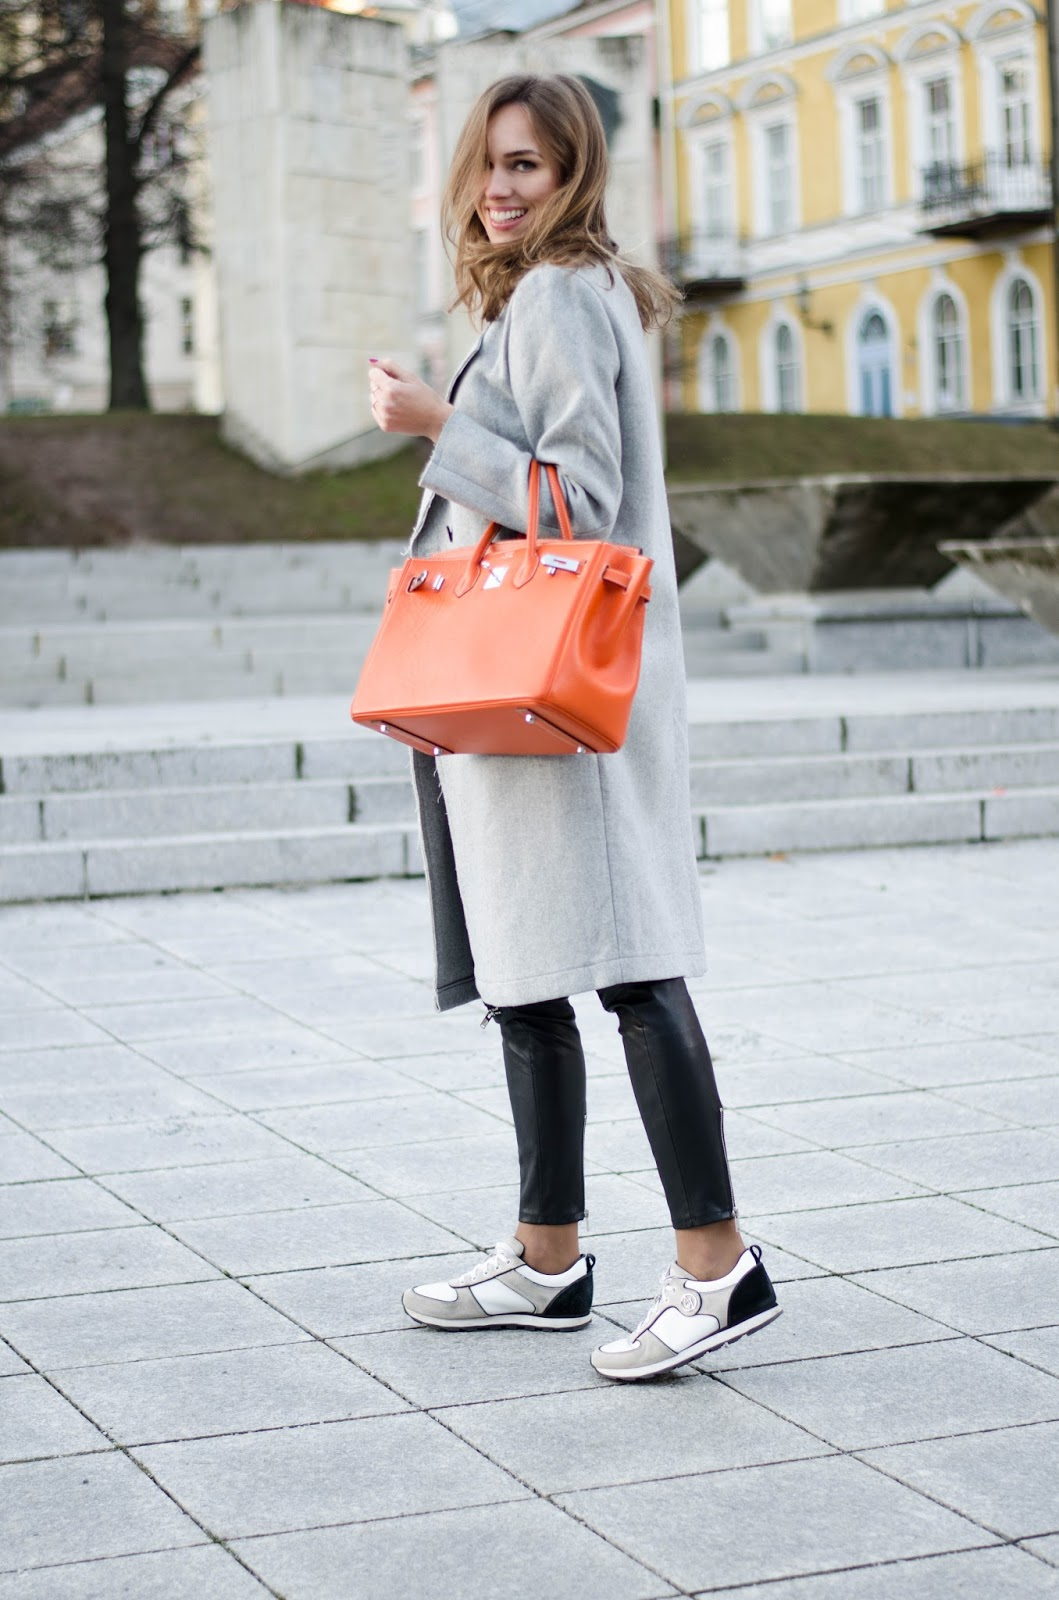 kristjaana mere hermes birkin bag casual winter outfit coat sneakers